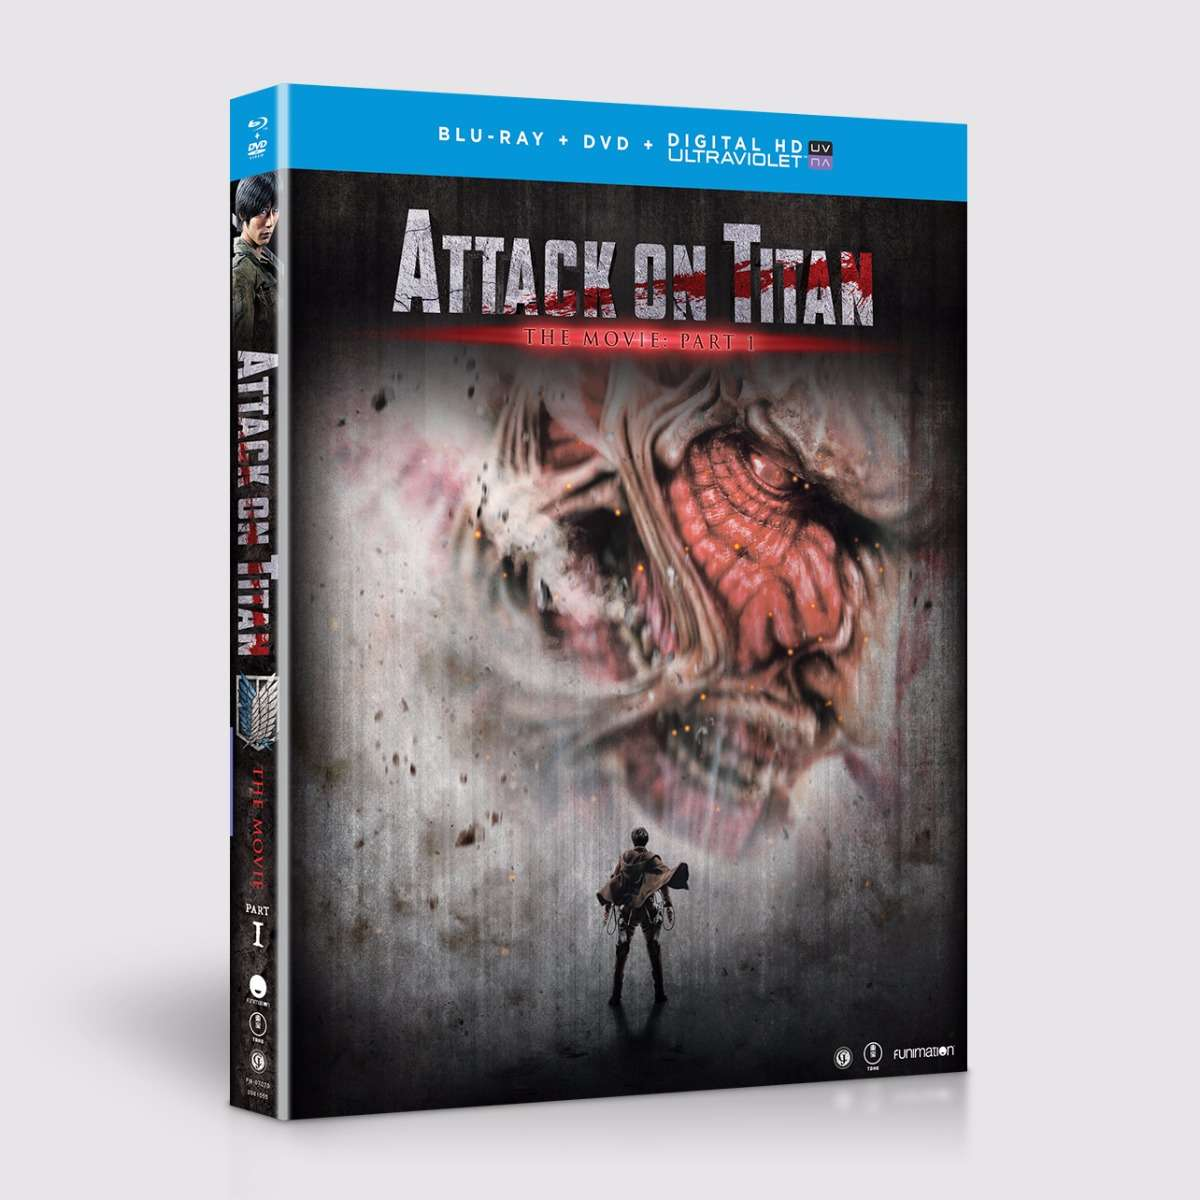 The Movie : Part 1 - BD/DVD Combo + UV home-video